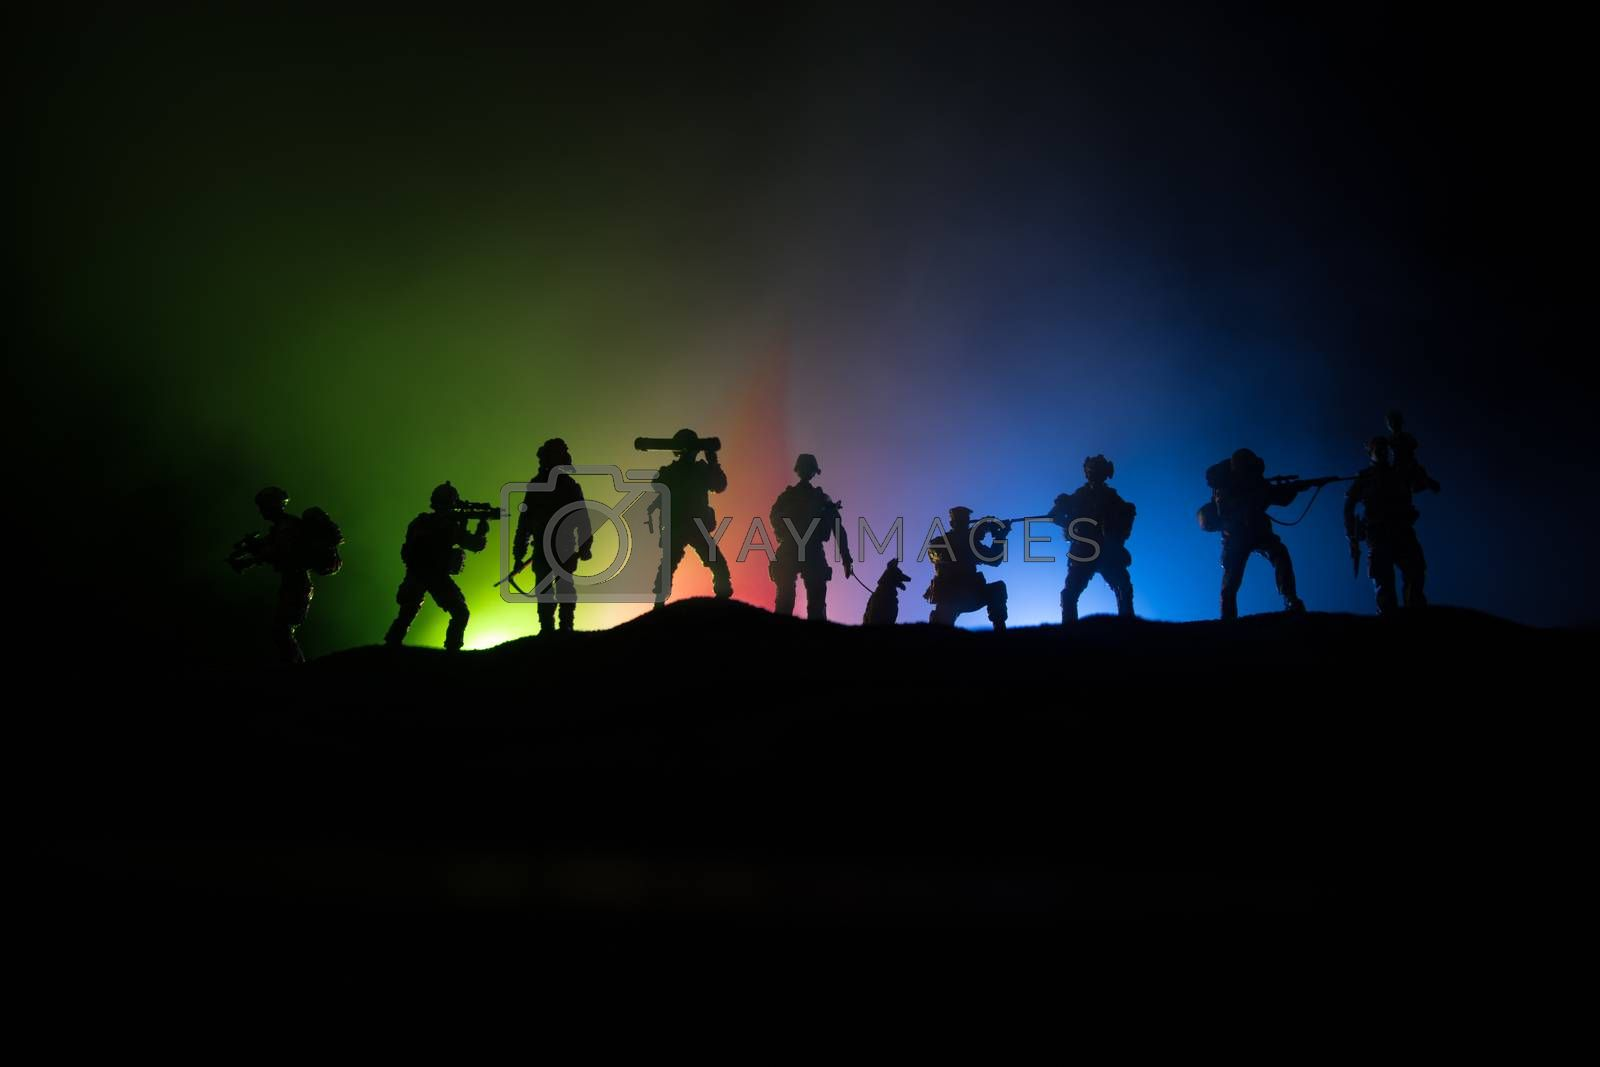 Azeri army concept. Silhouette of armed soldiers against Azerbaijani flag. Creative artwork decoration. Military silhouettes fighting scene dark toned foggy background. Selective focus